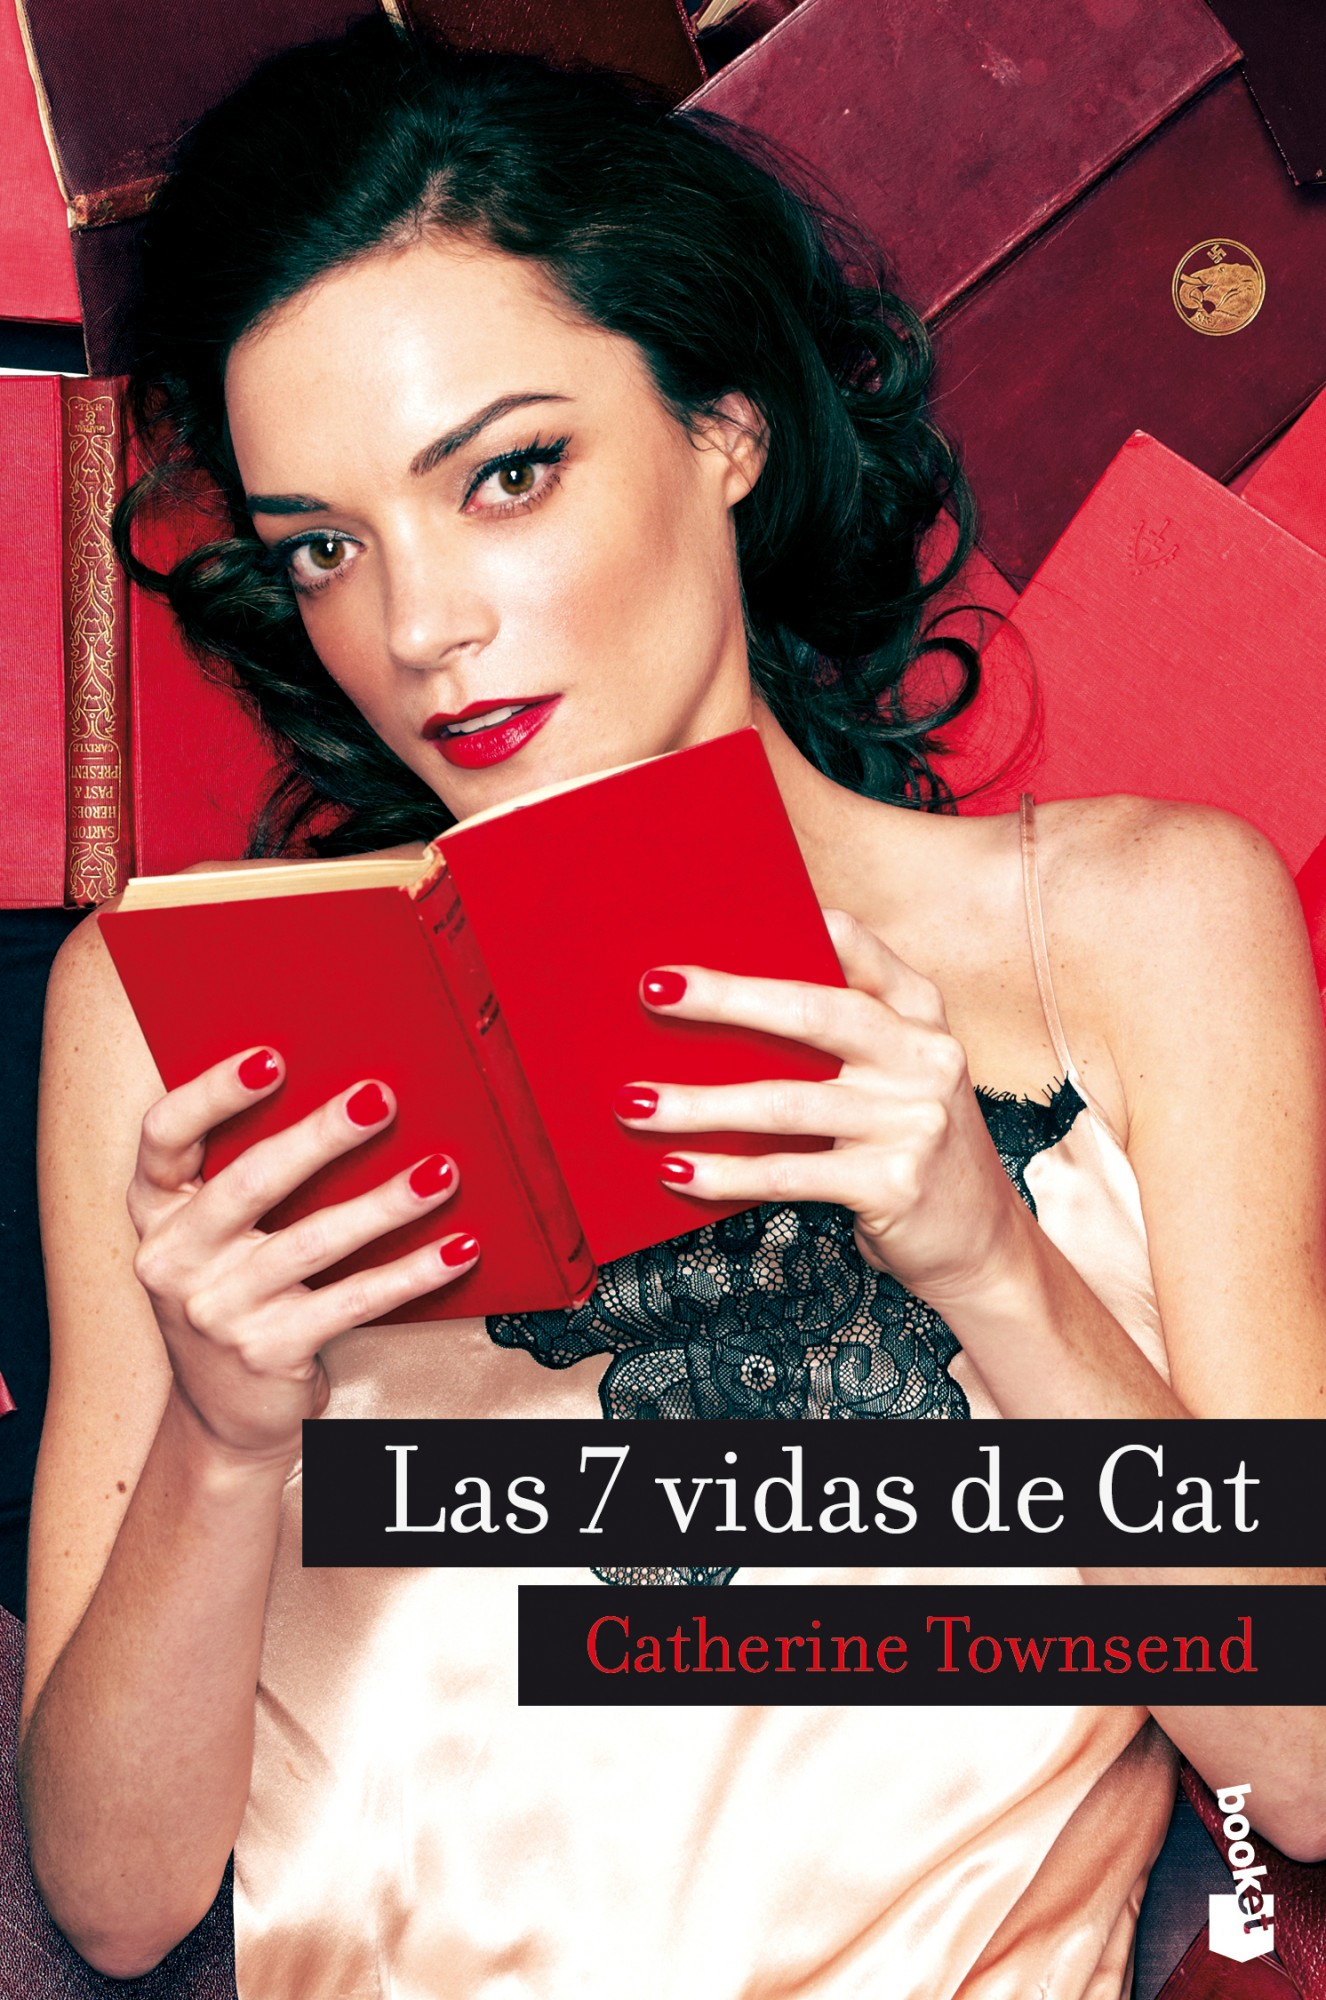 Las 7 vidas de Cat